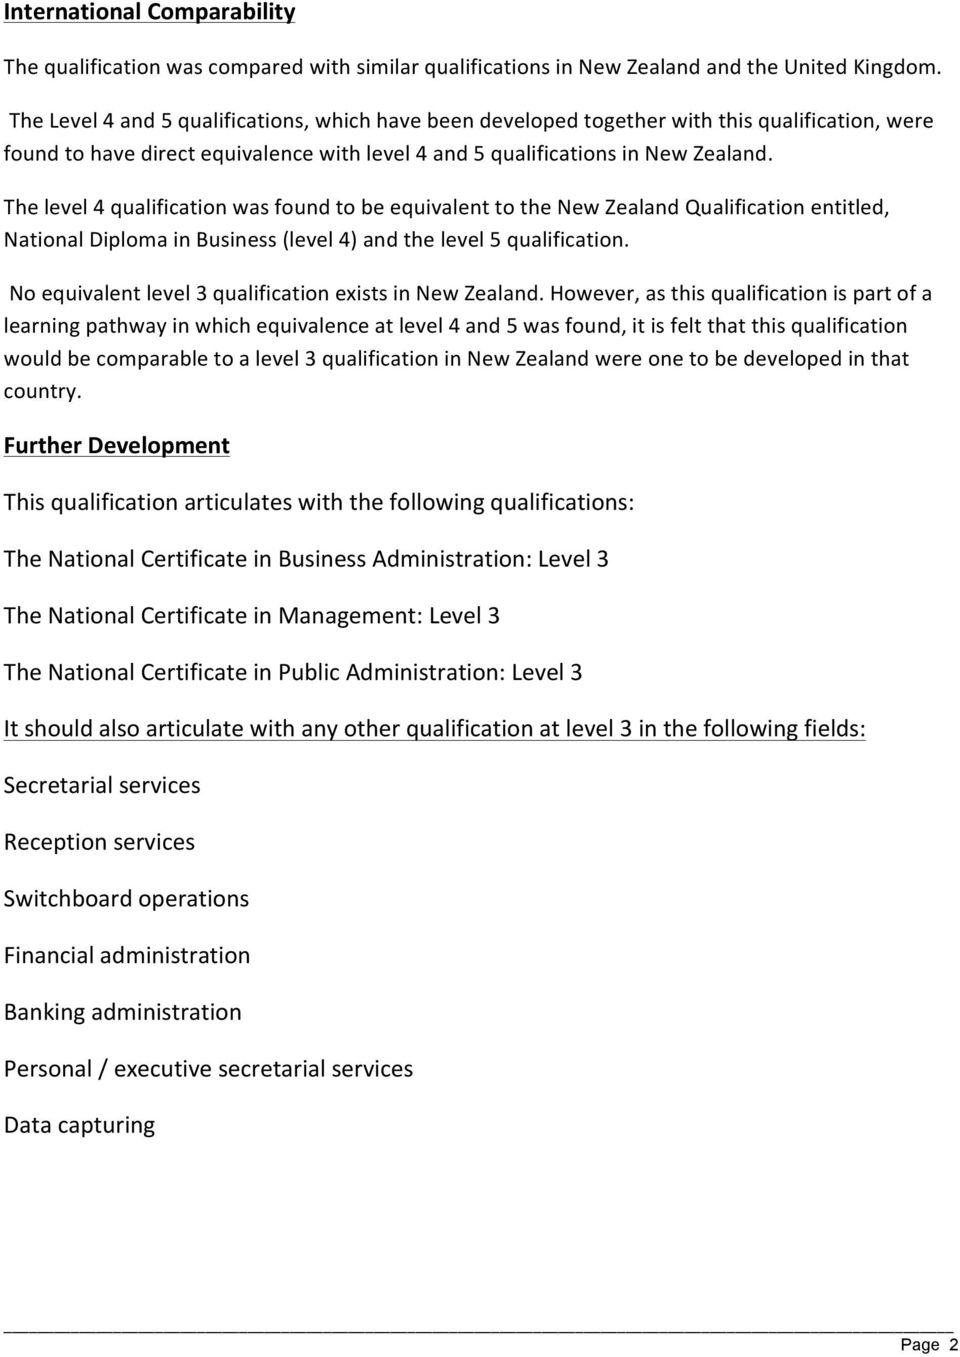 The level 4 qualification was found to be equivalent to the New Zealand Qualification entitled, National Diploma in Business (level 4) and the level 5 qualification.